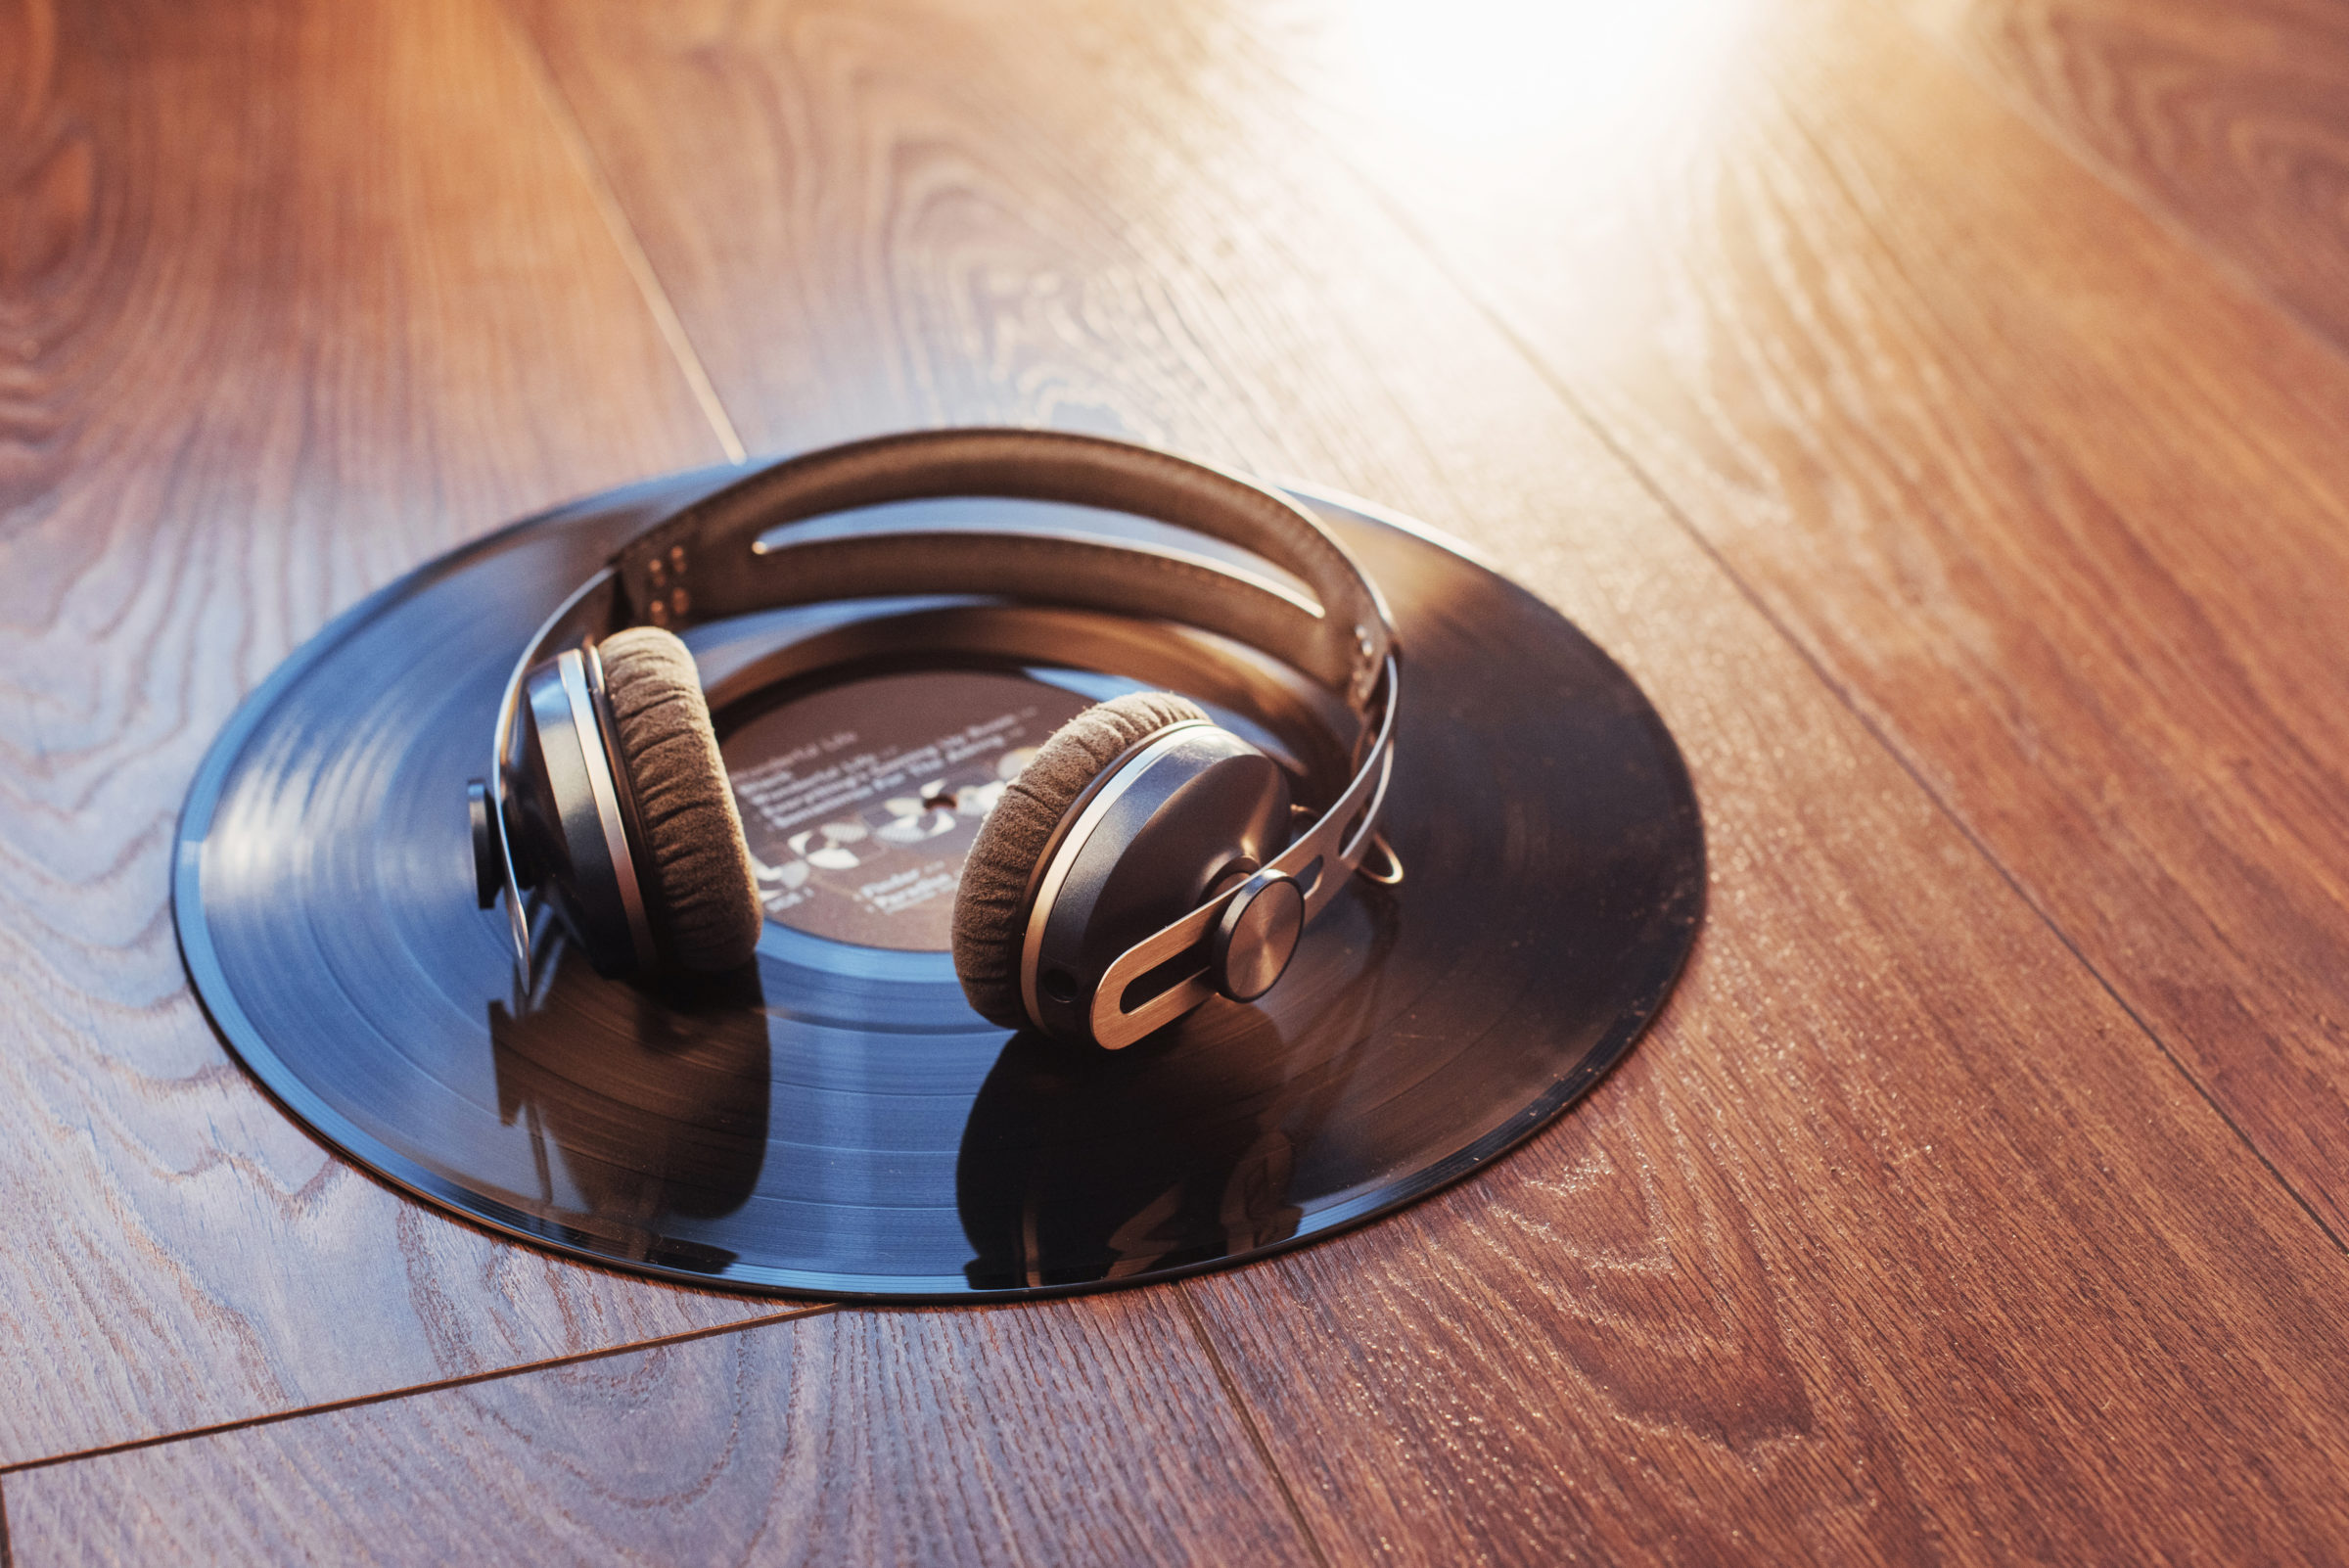 vinyl record and headphone over wooden table audio HJB44PW